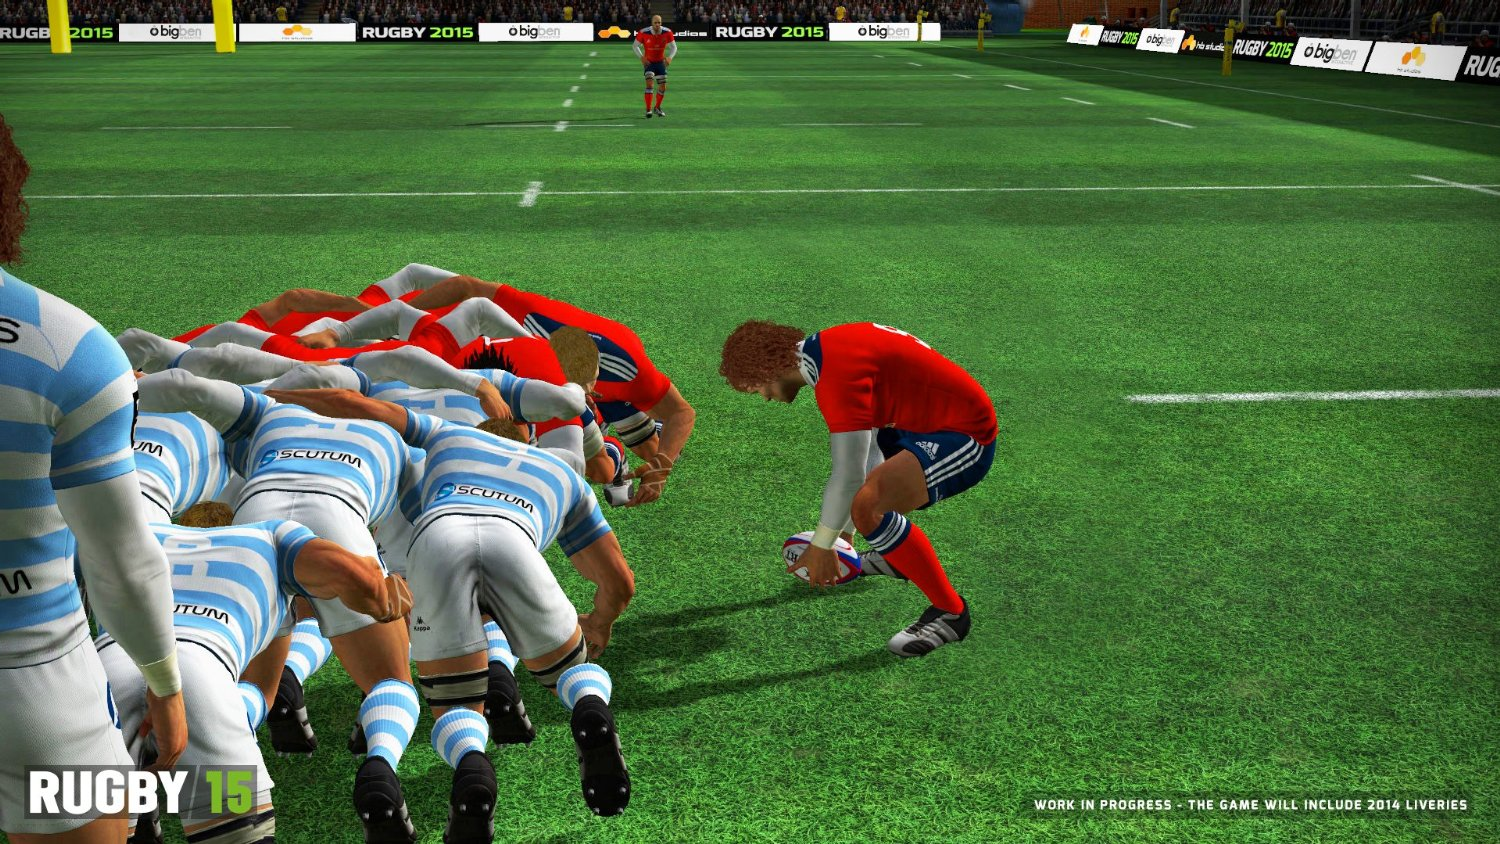 RUGBY 15 screenshot 1822